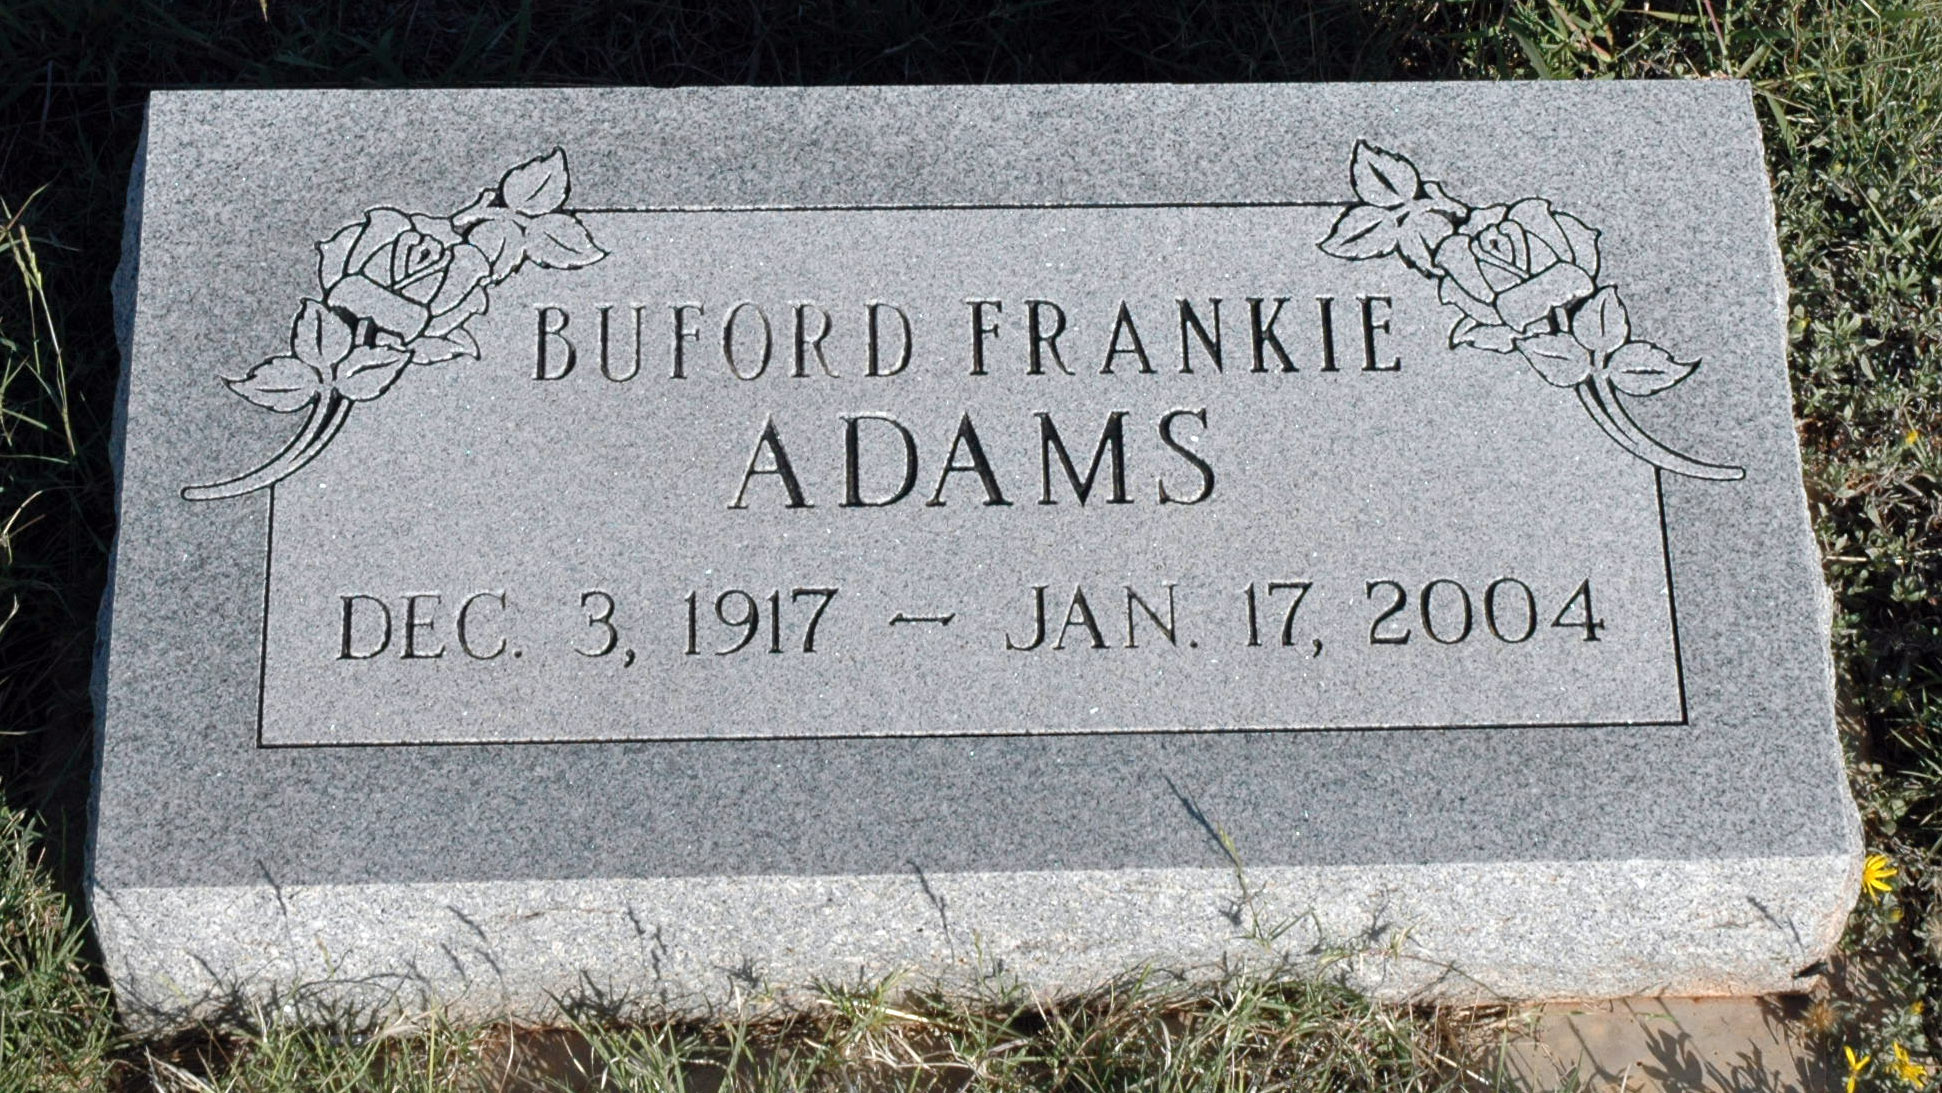 Buford Frankie Adams